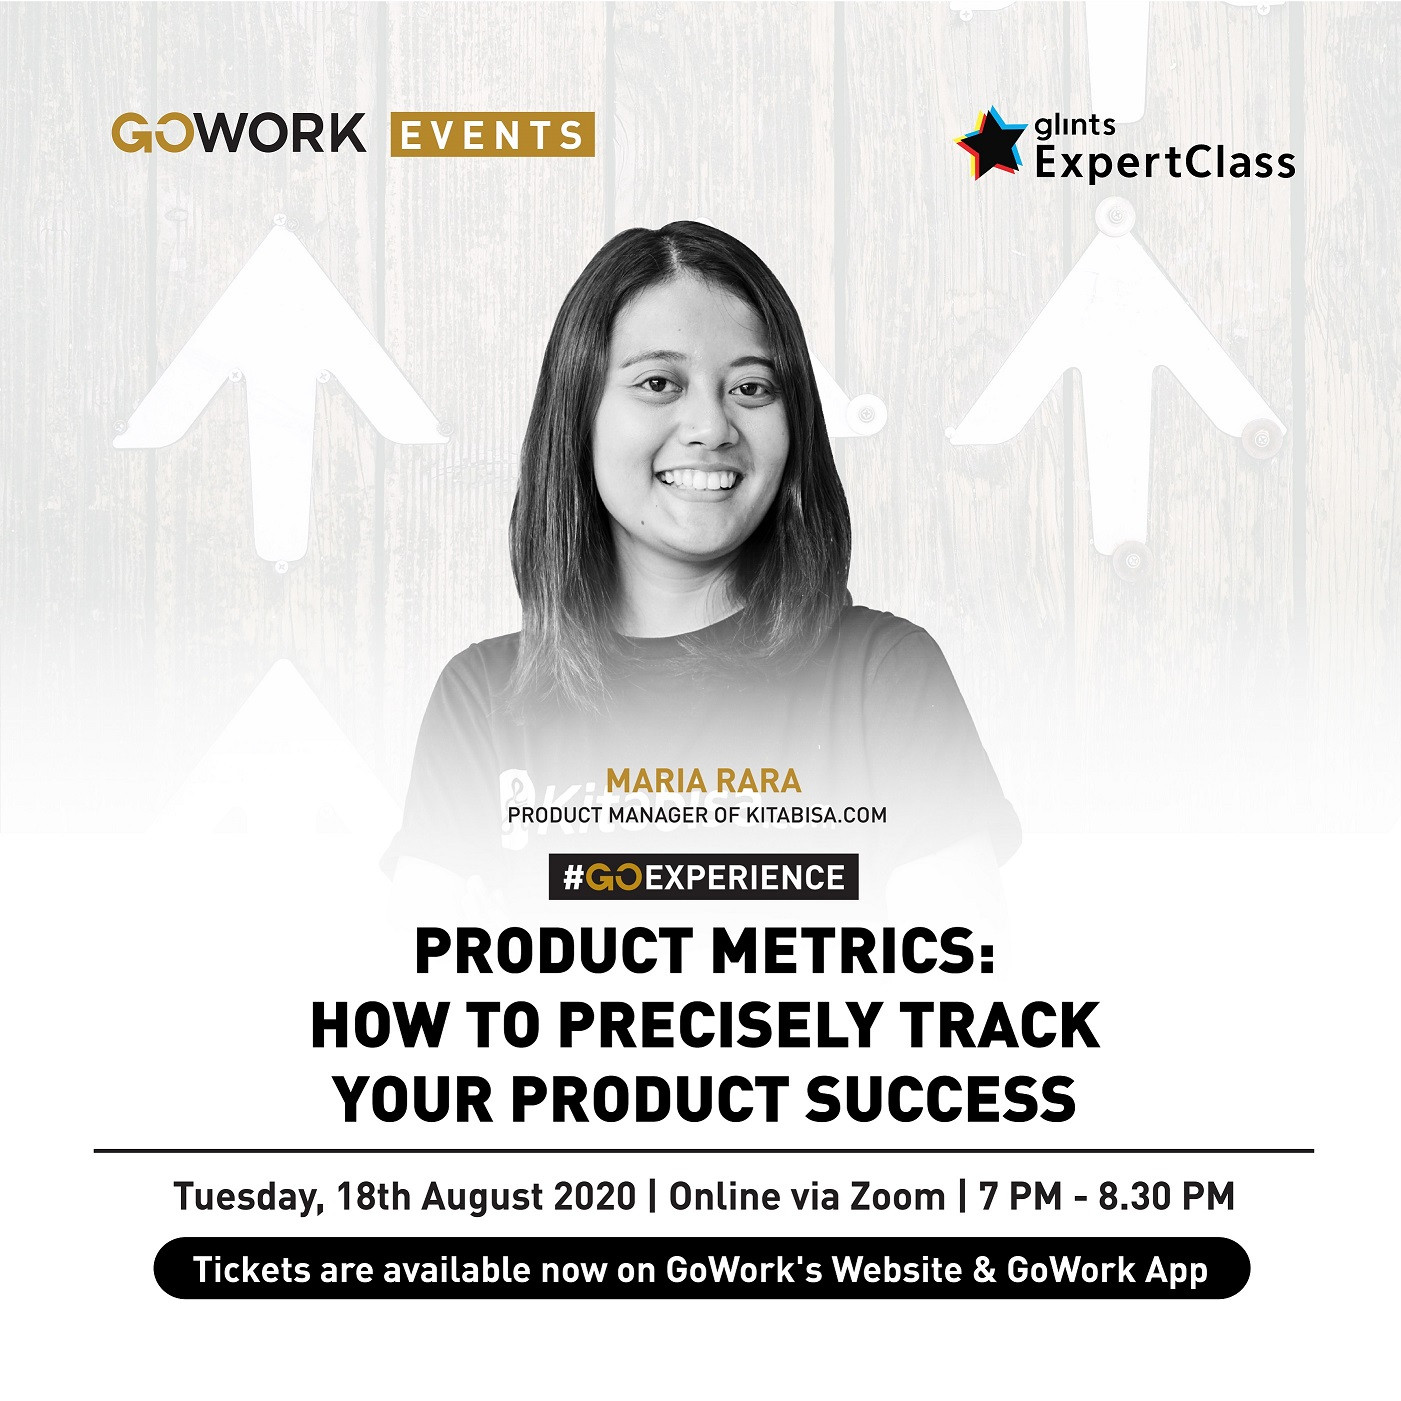 Product Metrics: How to Precisely Track Your Product Success